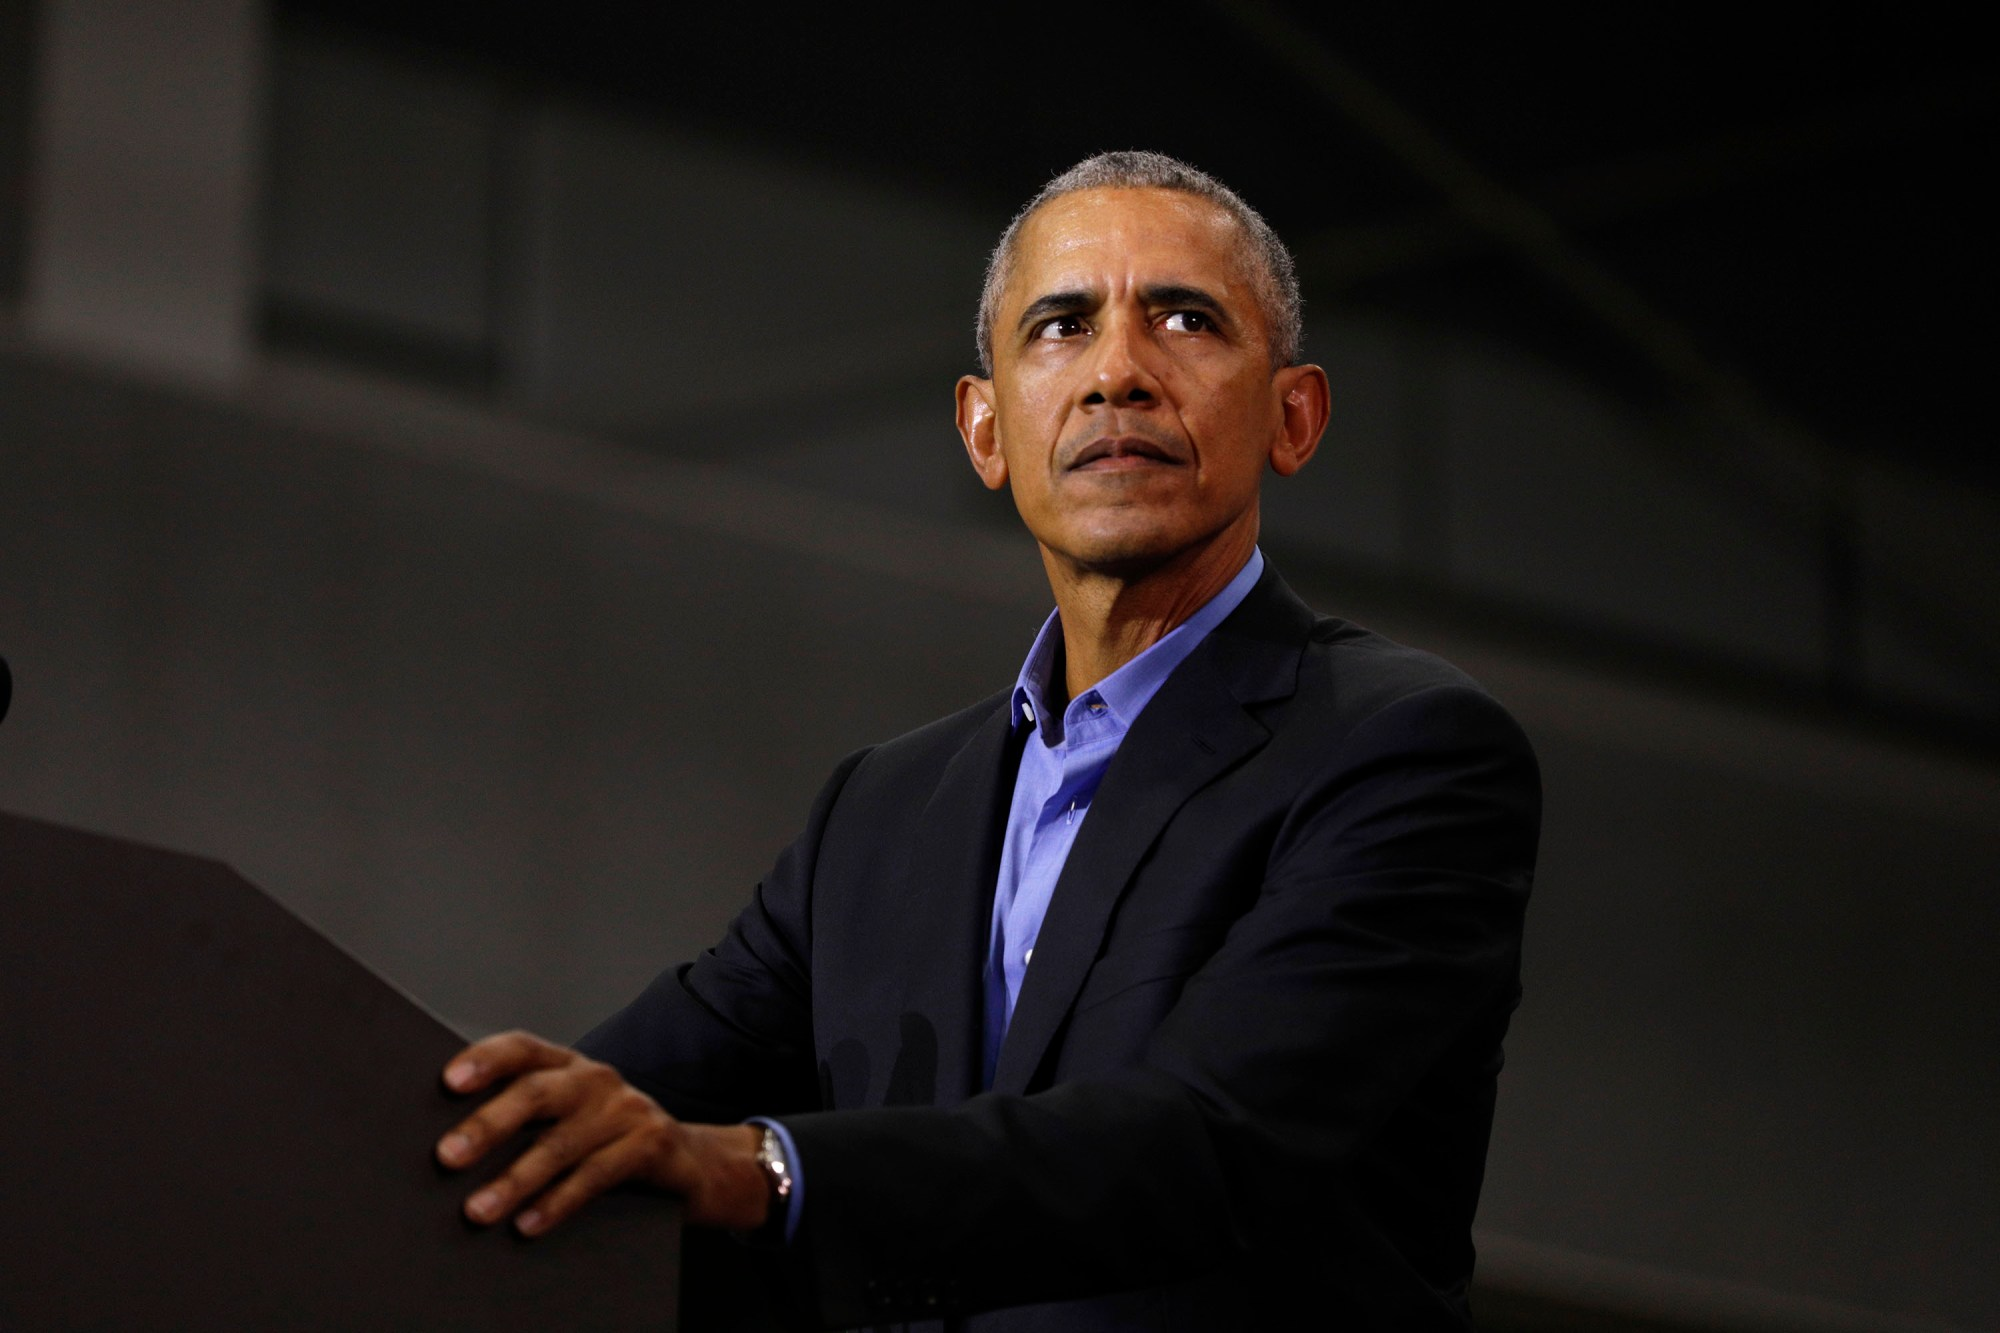 Former President Barack Obama issued a rare criticism of the Trump administration Tuesday after it announced it's rolling back his signature fuel standards aimed at combating the climate crisis. (Bill Pugliano/Getty Images)